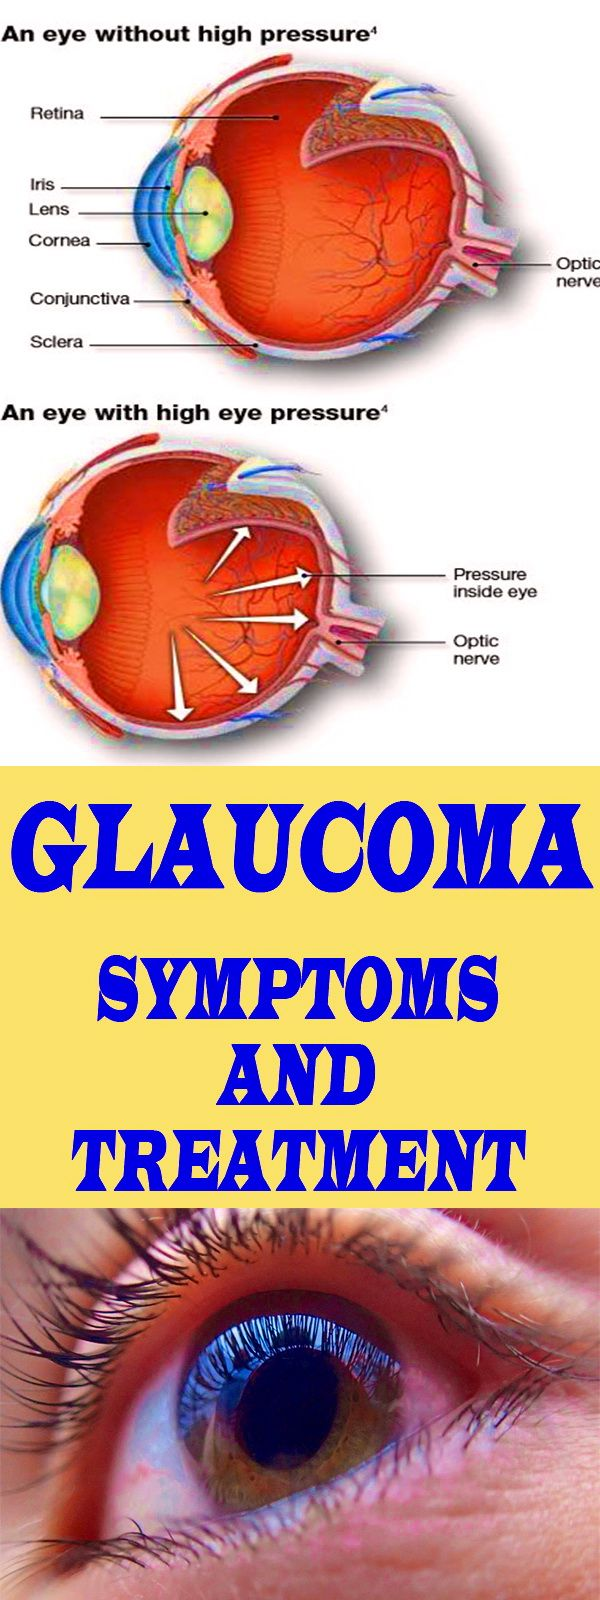 Glaucoma is not a disease of only one eye but on the both eyes resulting in nerve damage that can cause vision loss.